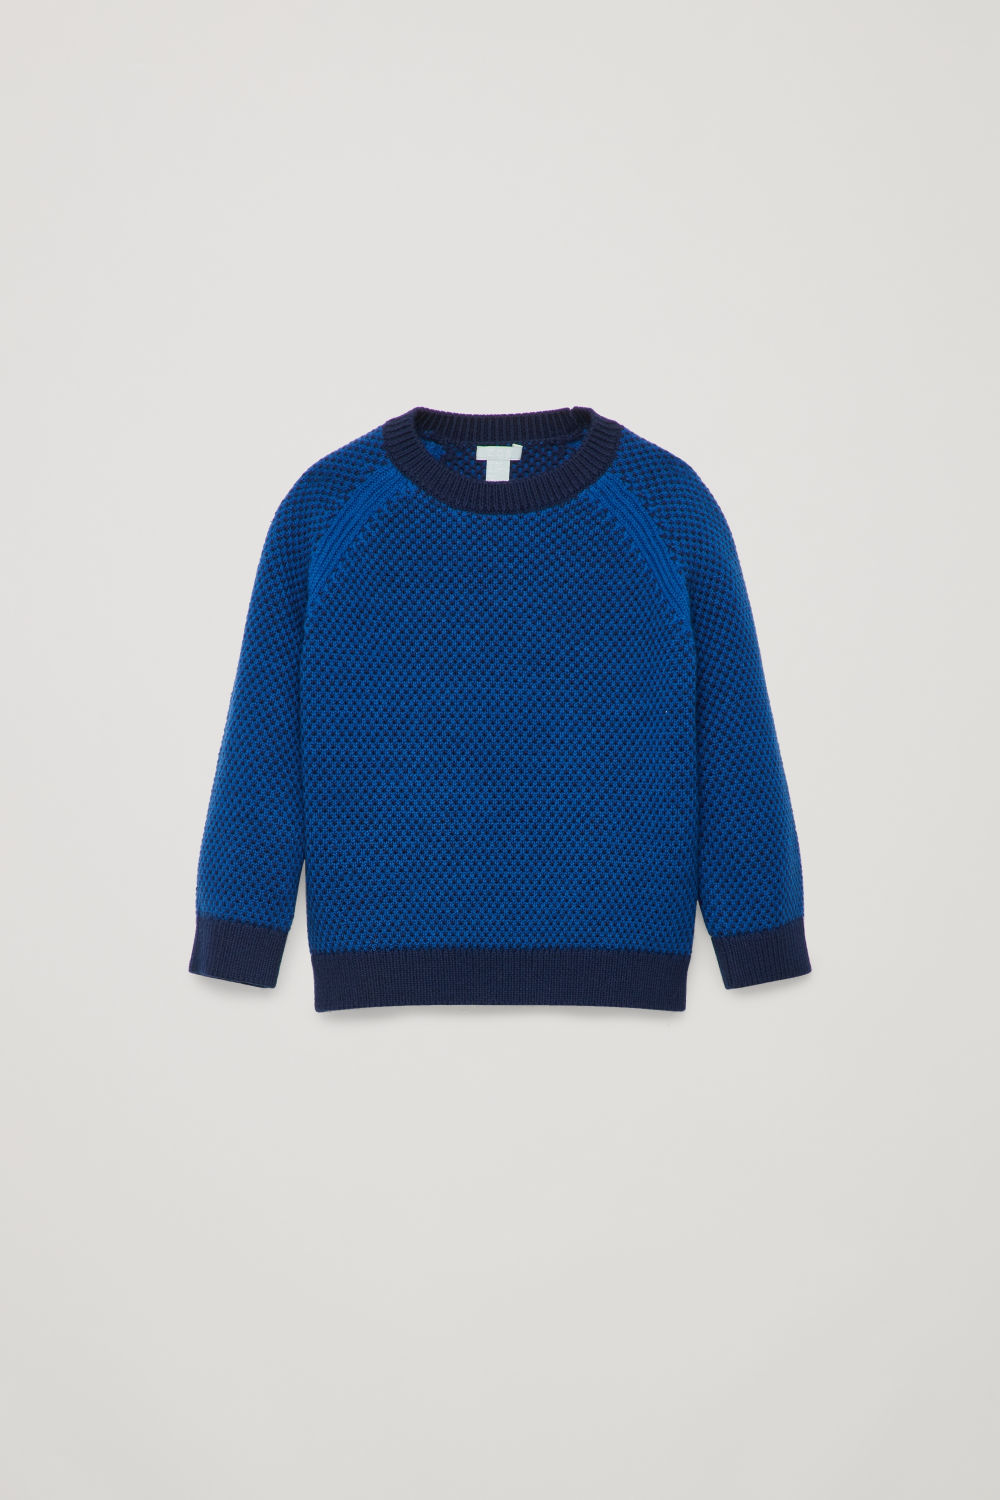 STITCH-PATTERN WOOL JUMPER